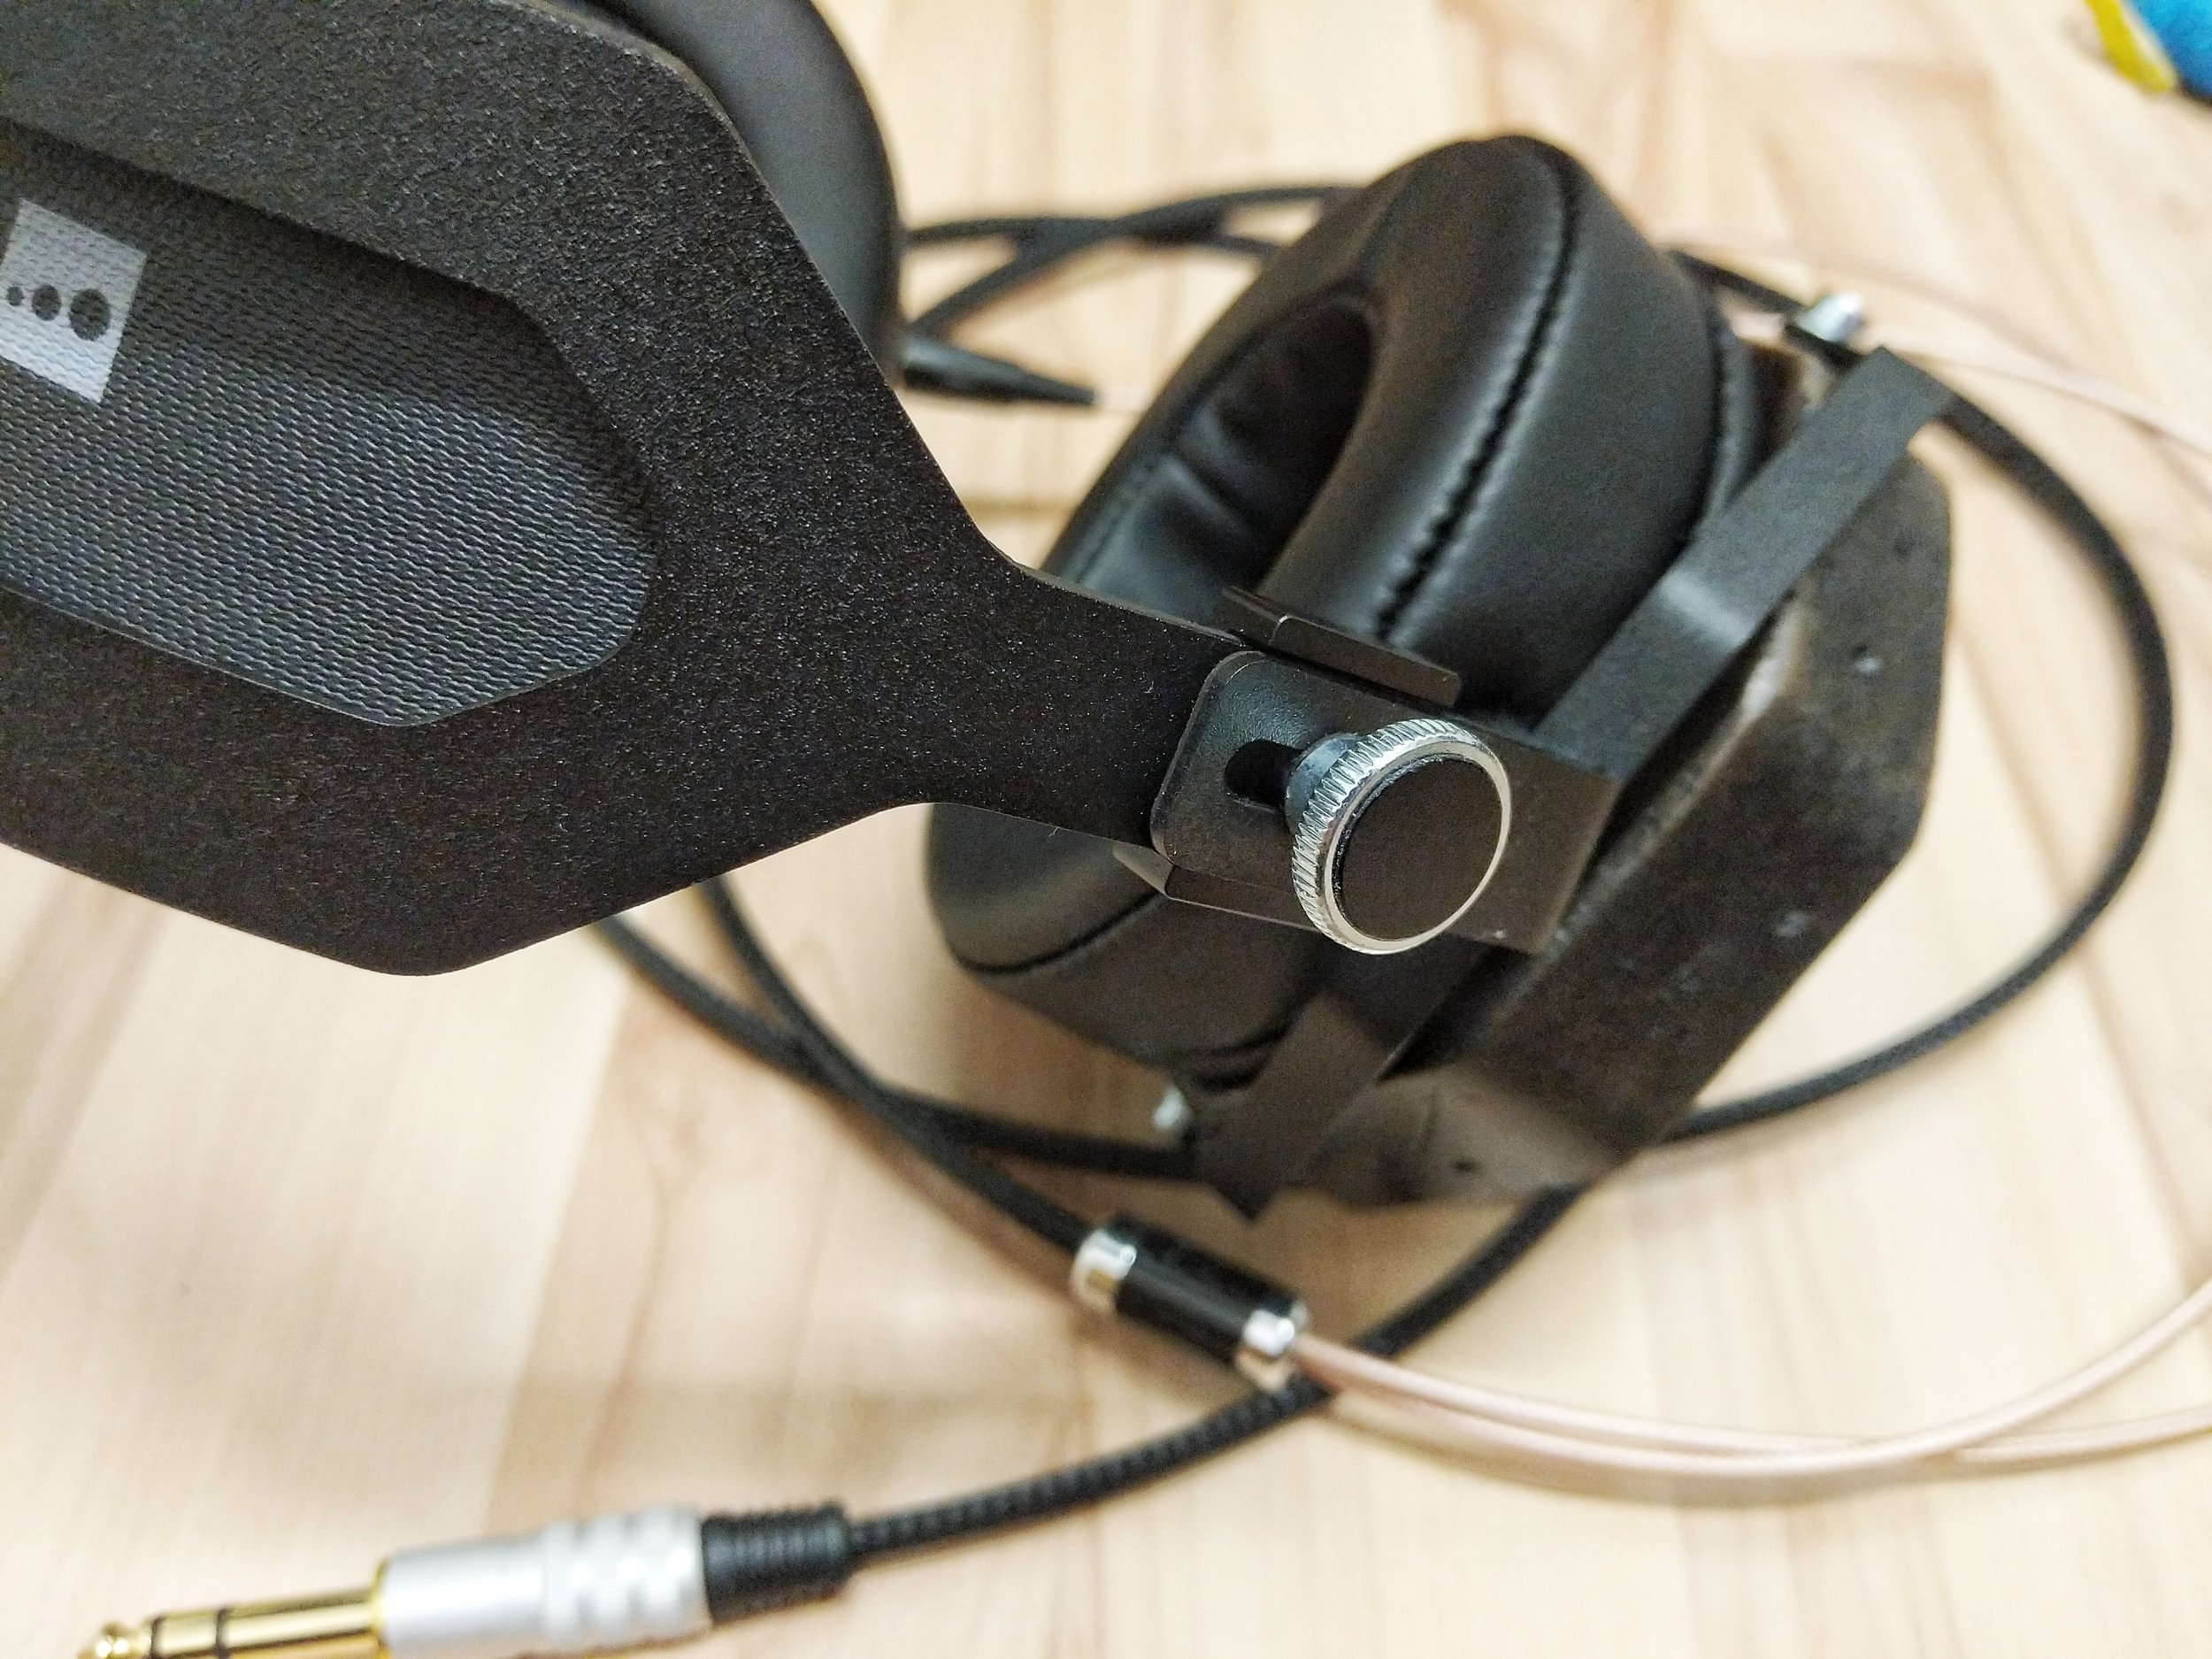 earcup adjustments and testing on the Erzetich Mania Headphone.